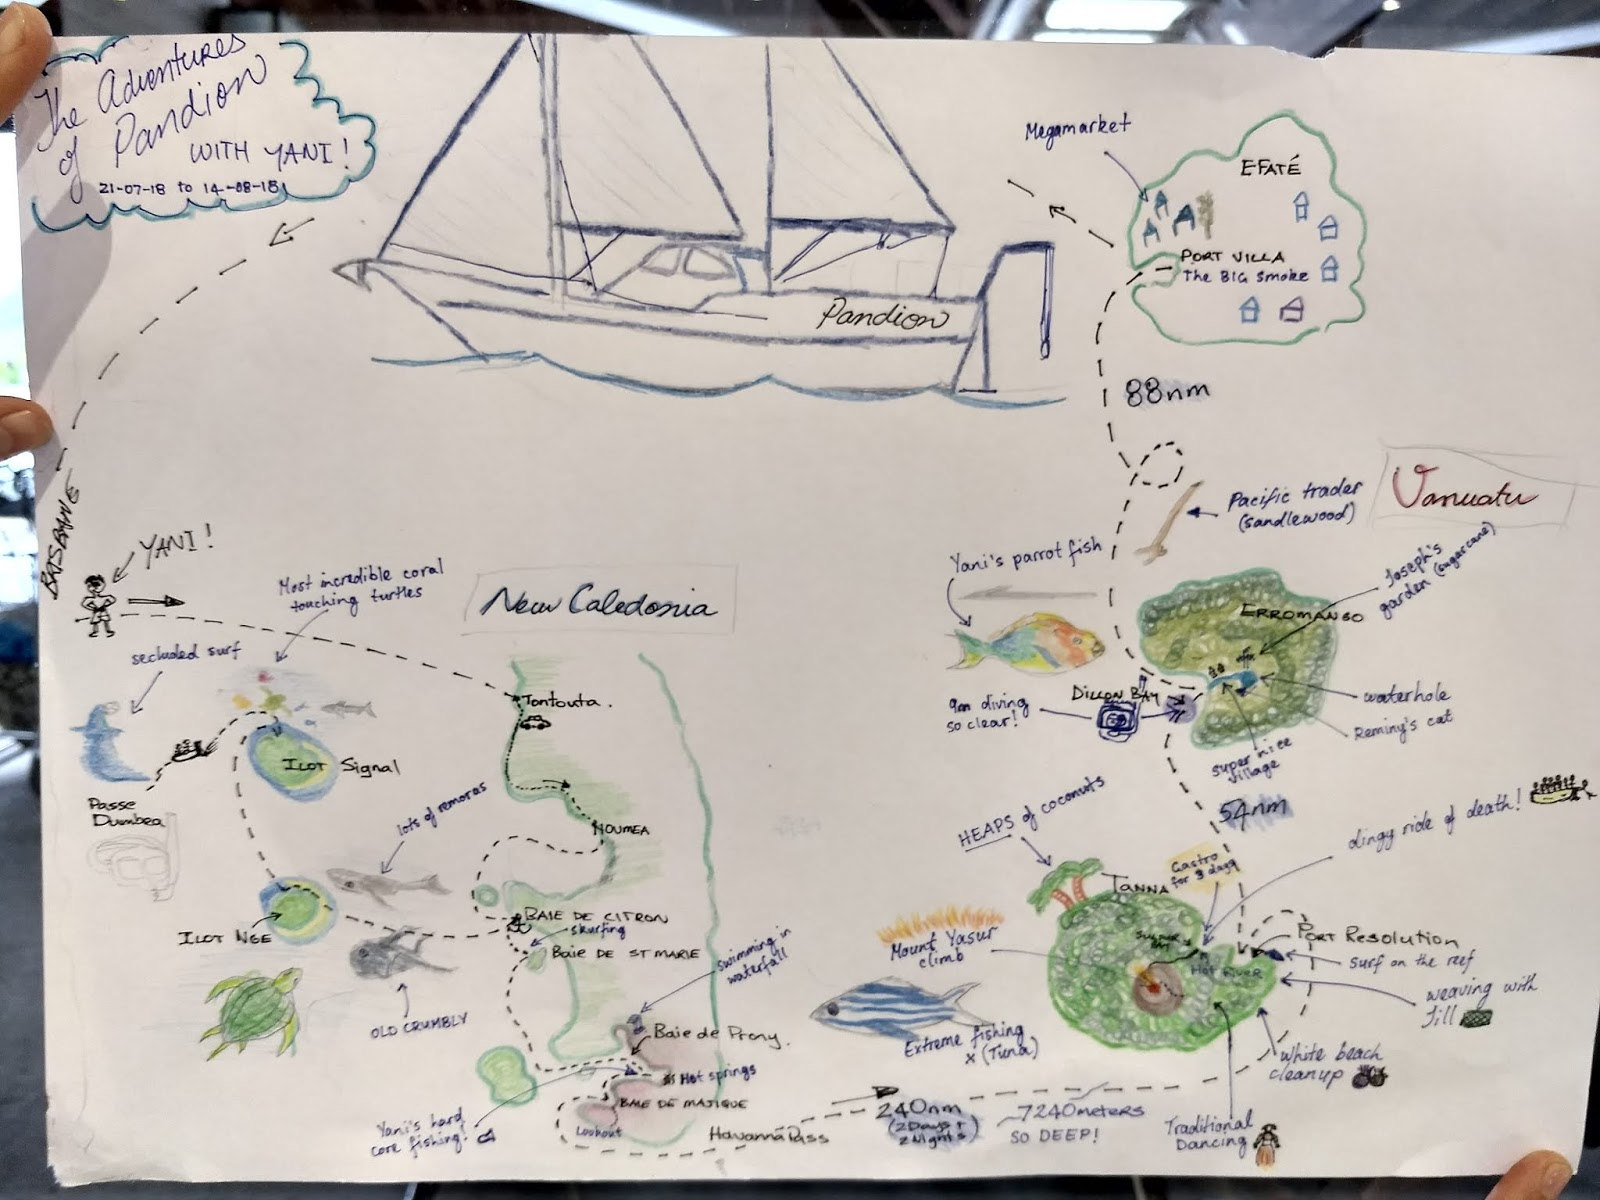 this map created by all the crew at the vila airport as he was leaving us represents yani s three weeks plus stay aboard pandion he joined us in noumea